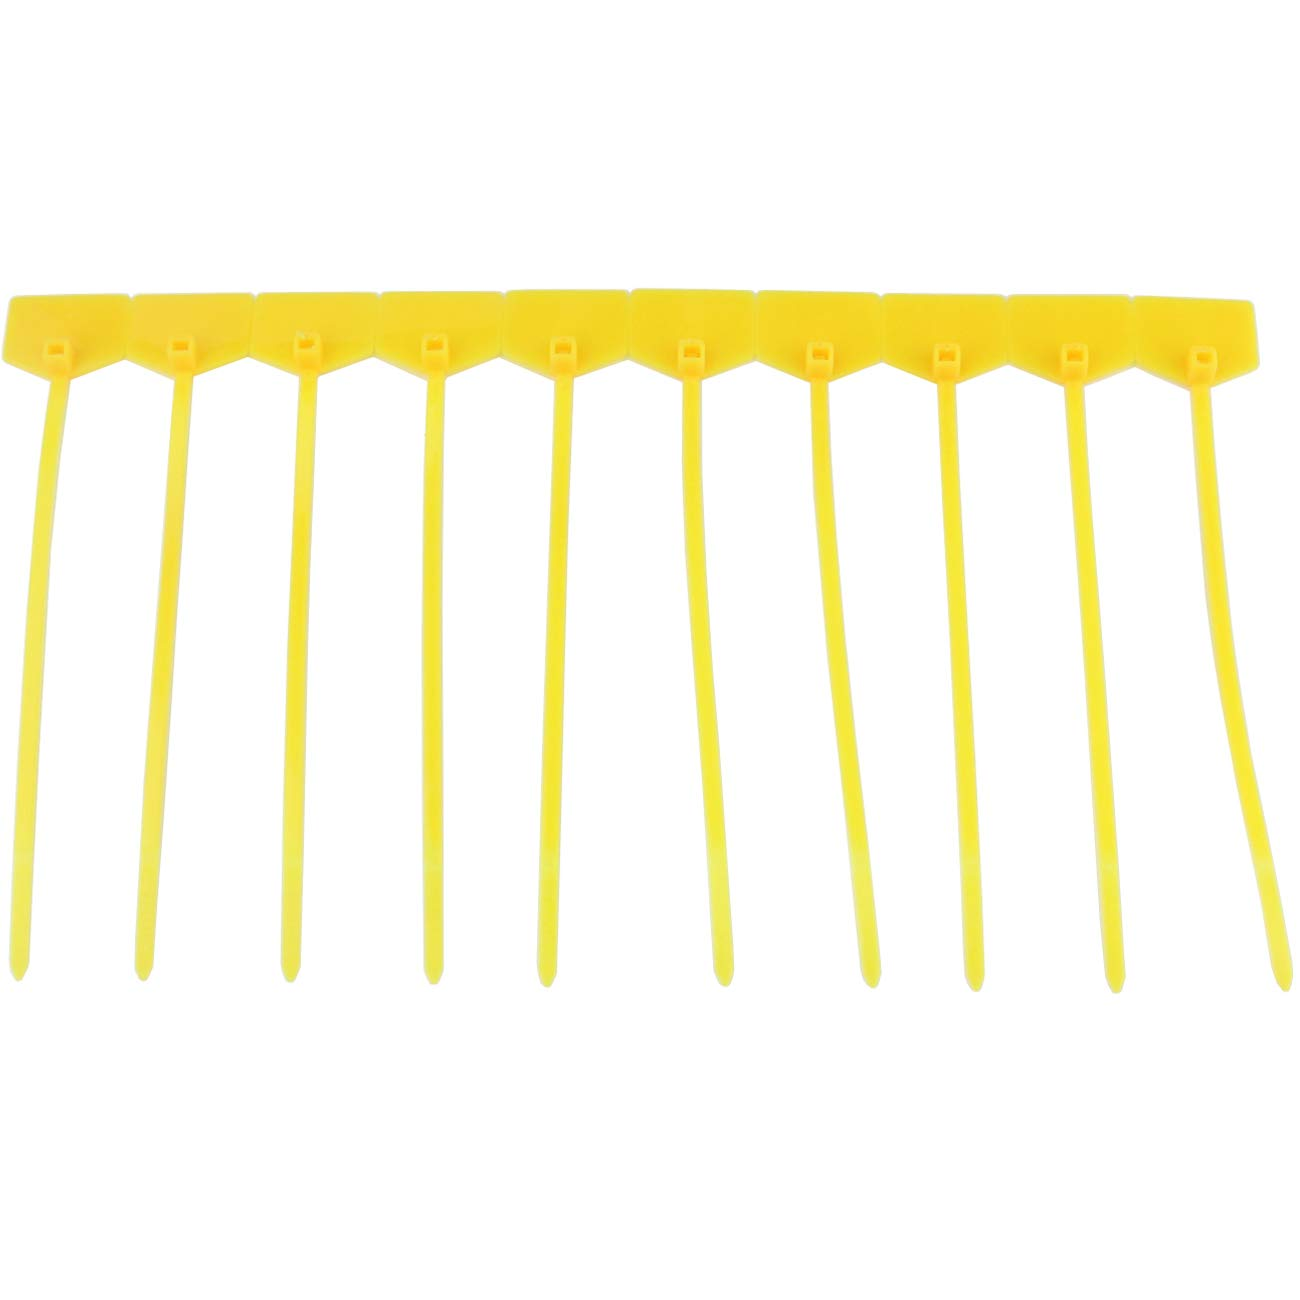 Ogrmar 100pcs Cable Label Mark Tag Ethernet Wire Zip Ties Cable with Marking Label Yellow